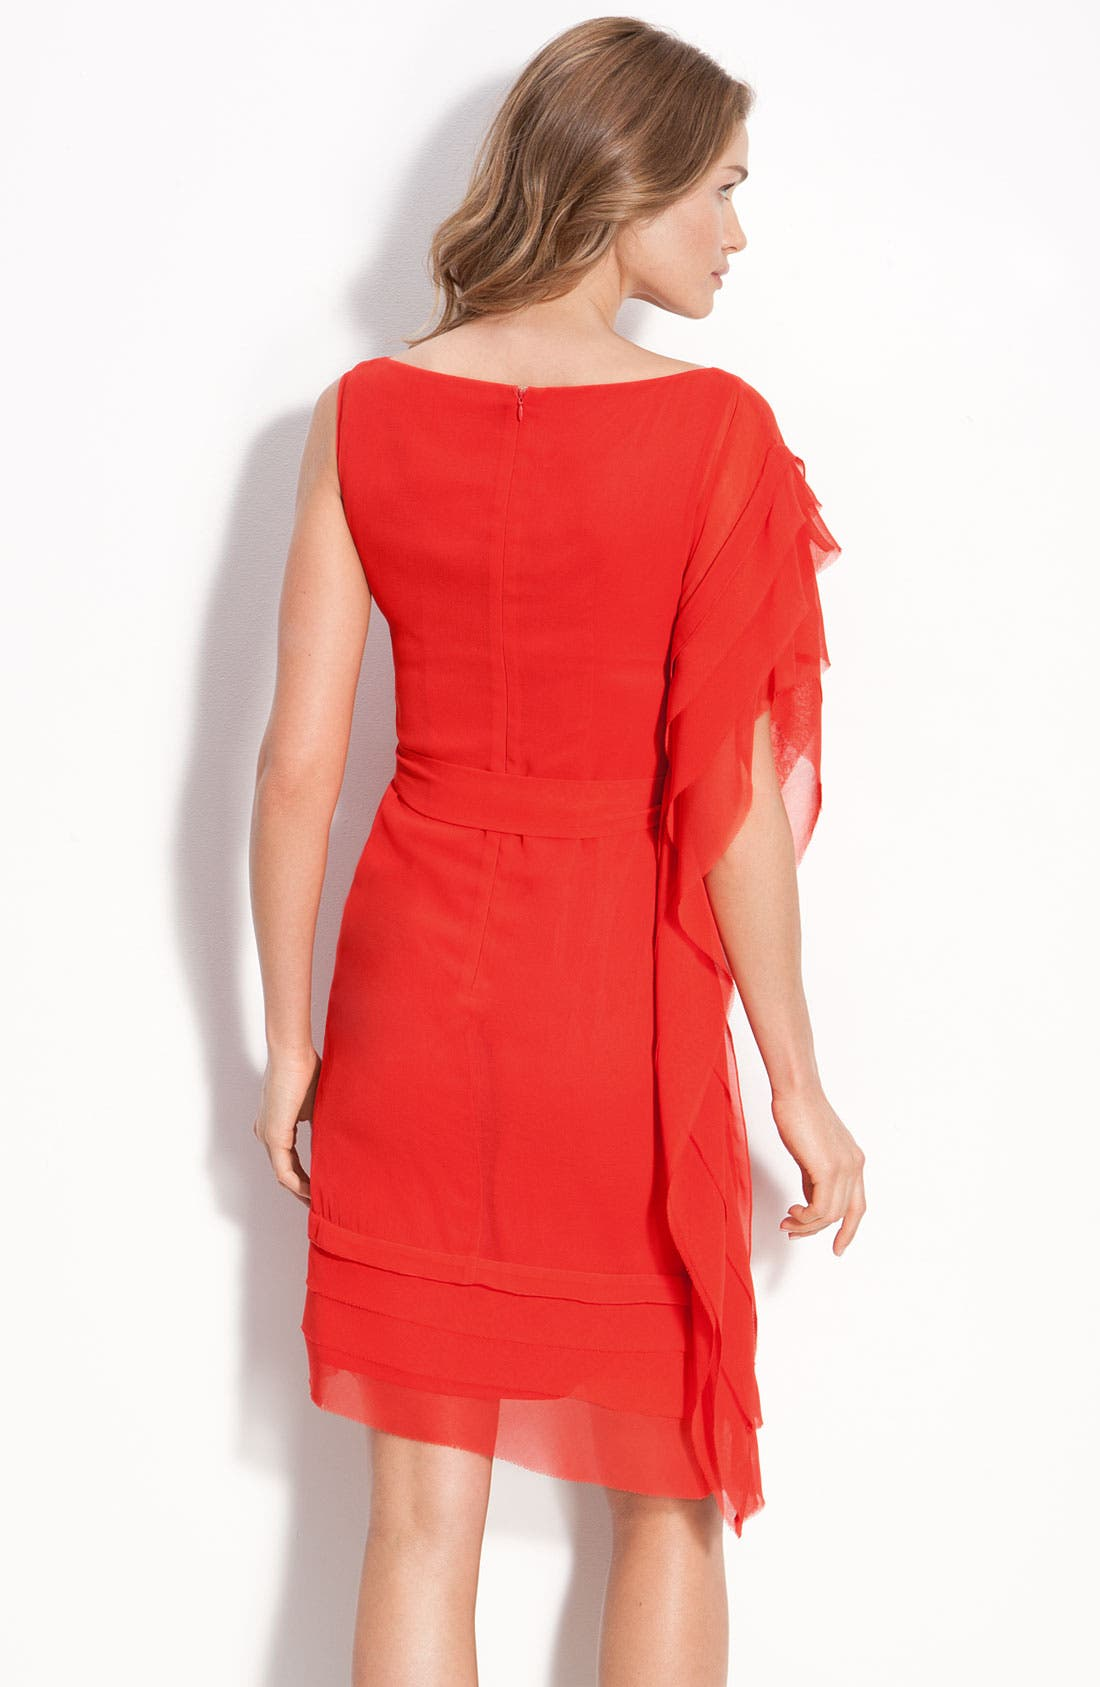 Alternate Image 2  - Vince Camuto Asymmetrical Layered Dress with Sash Tie